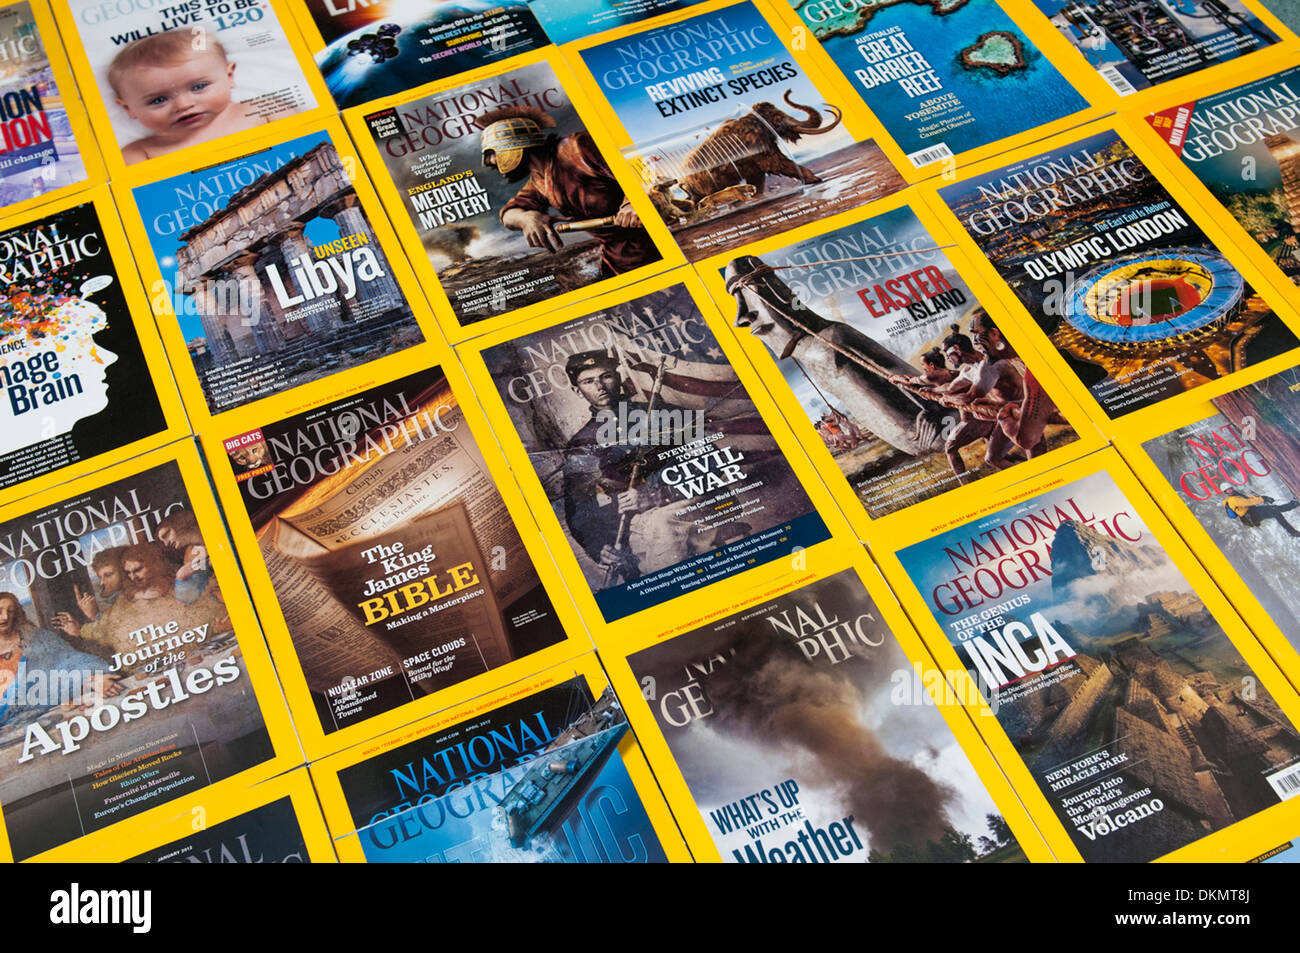 National Geographic Magazine Stock Photos & National Geographic ...